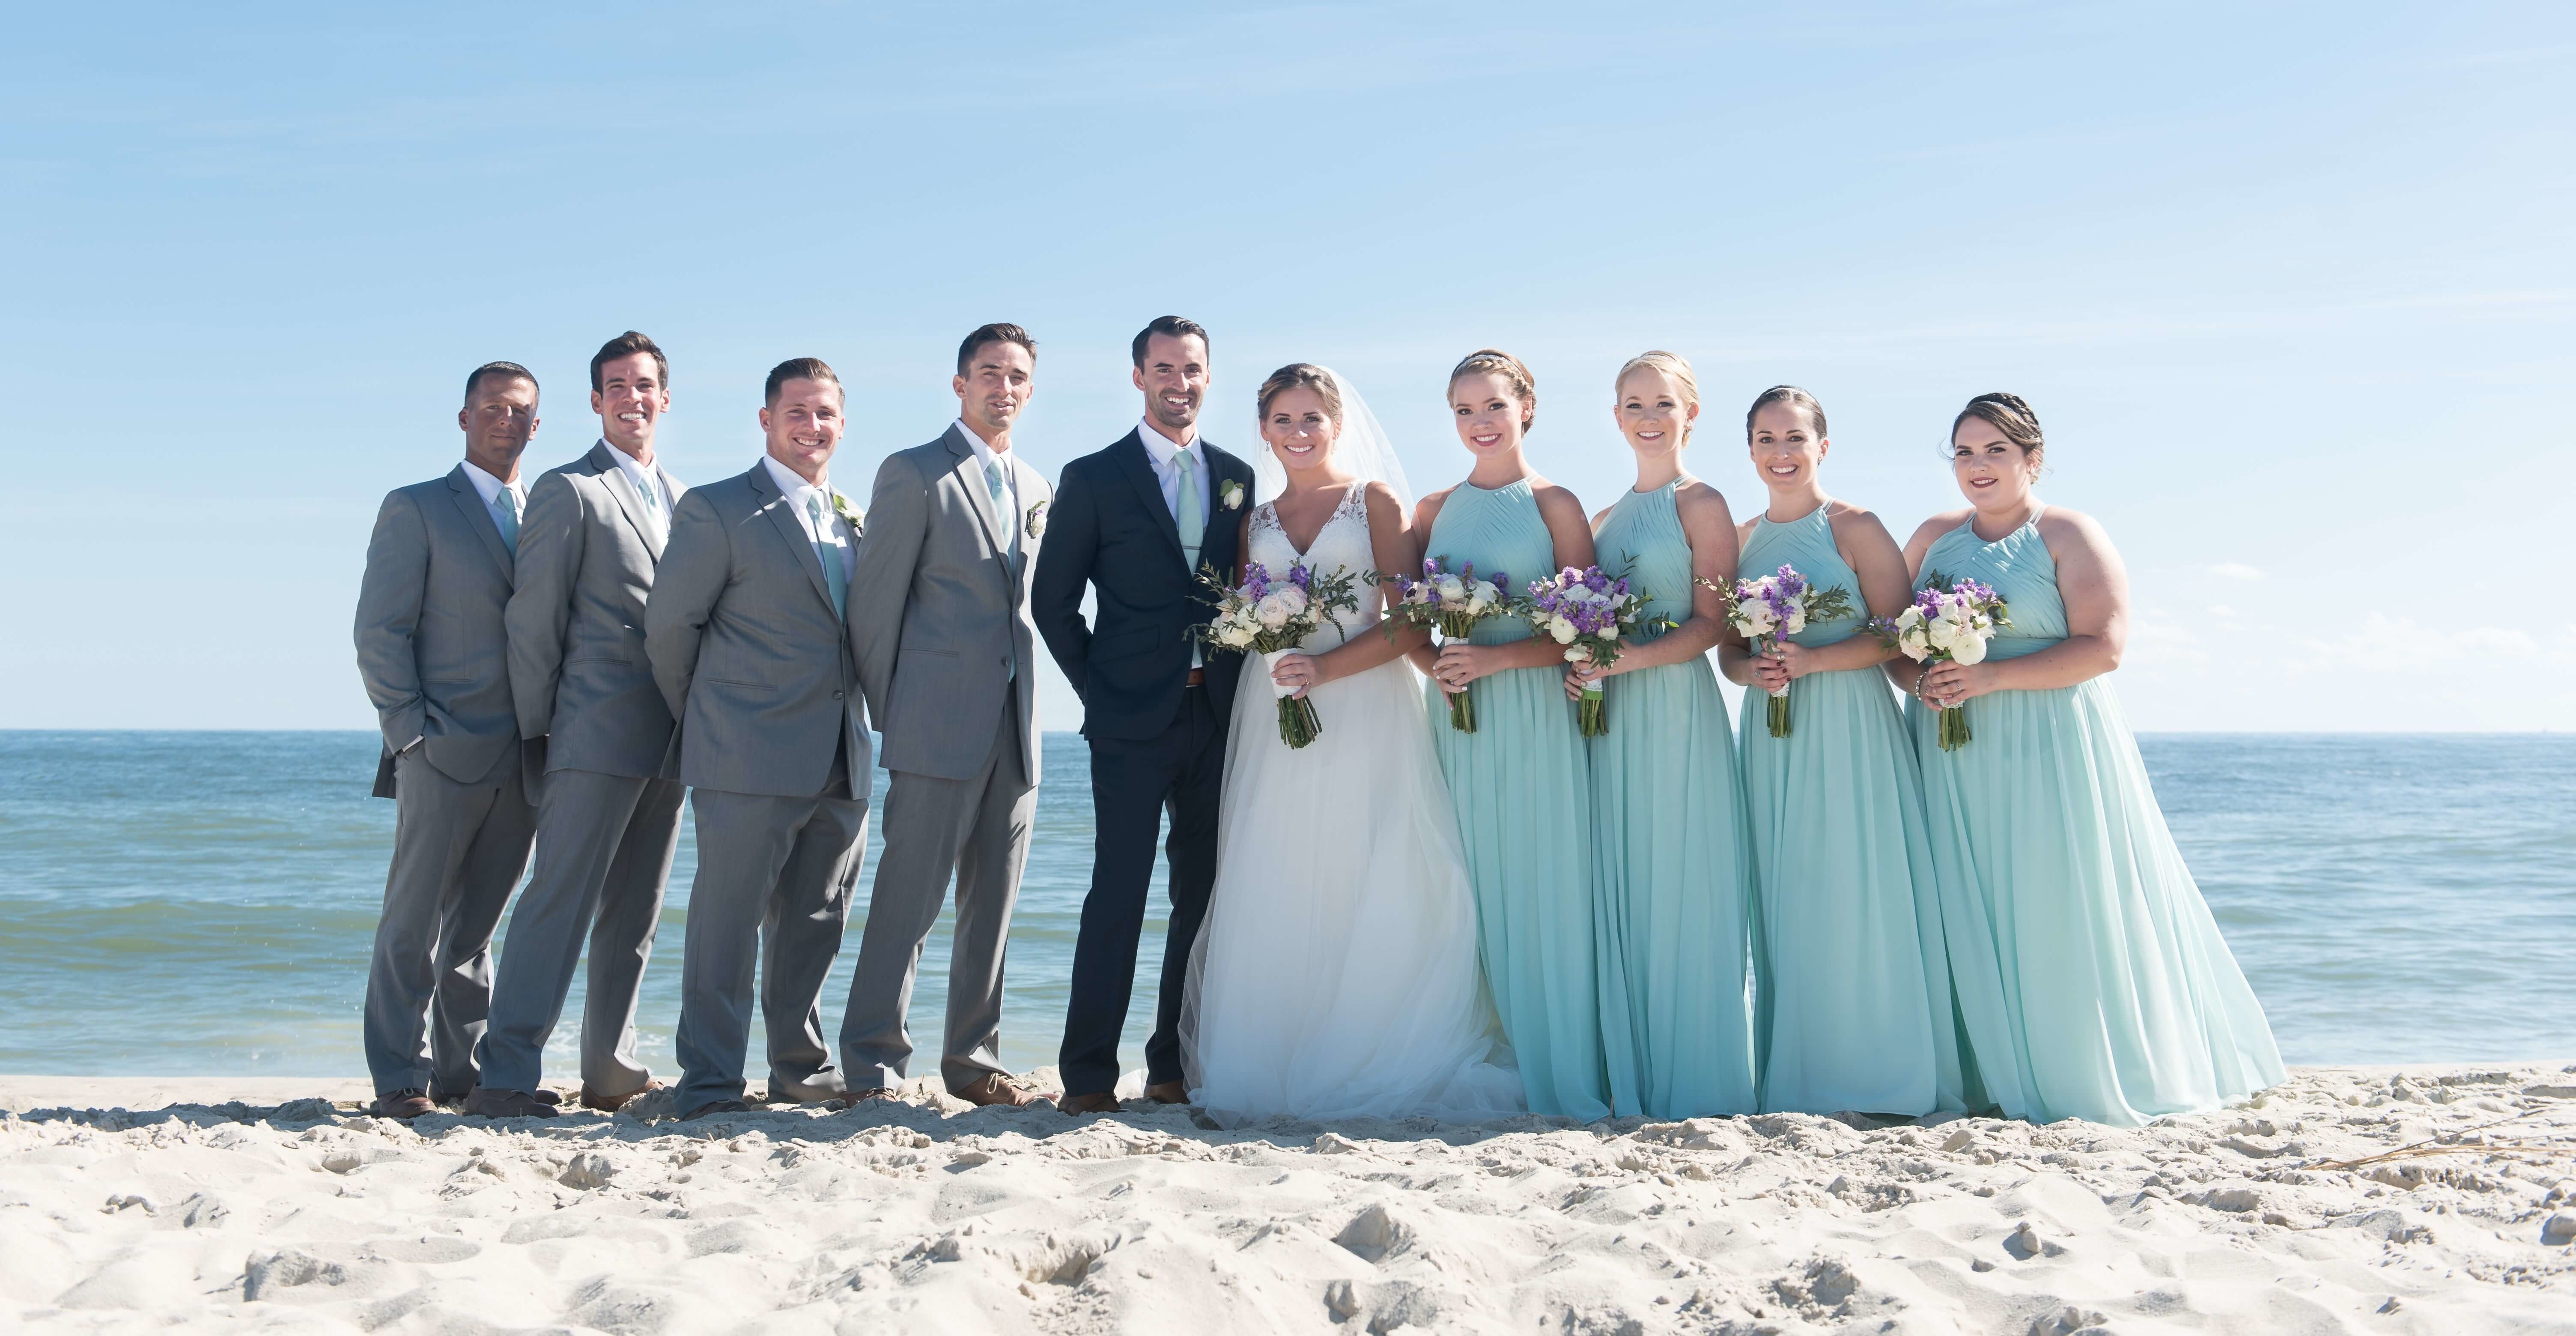 Wedding Party On The Beach With White Roses